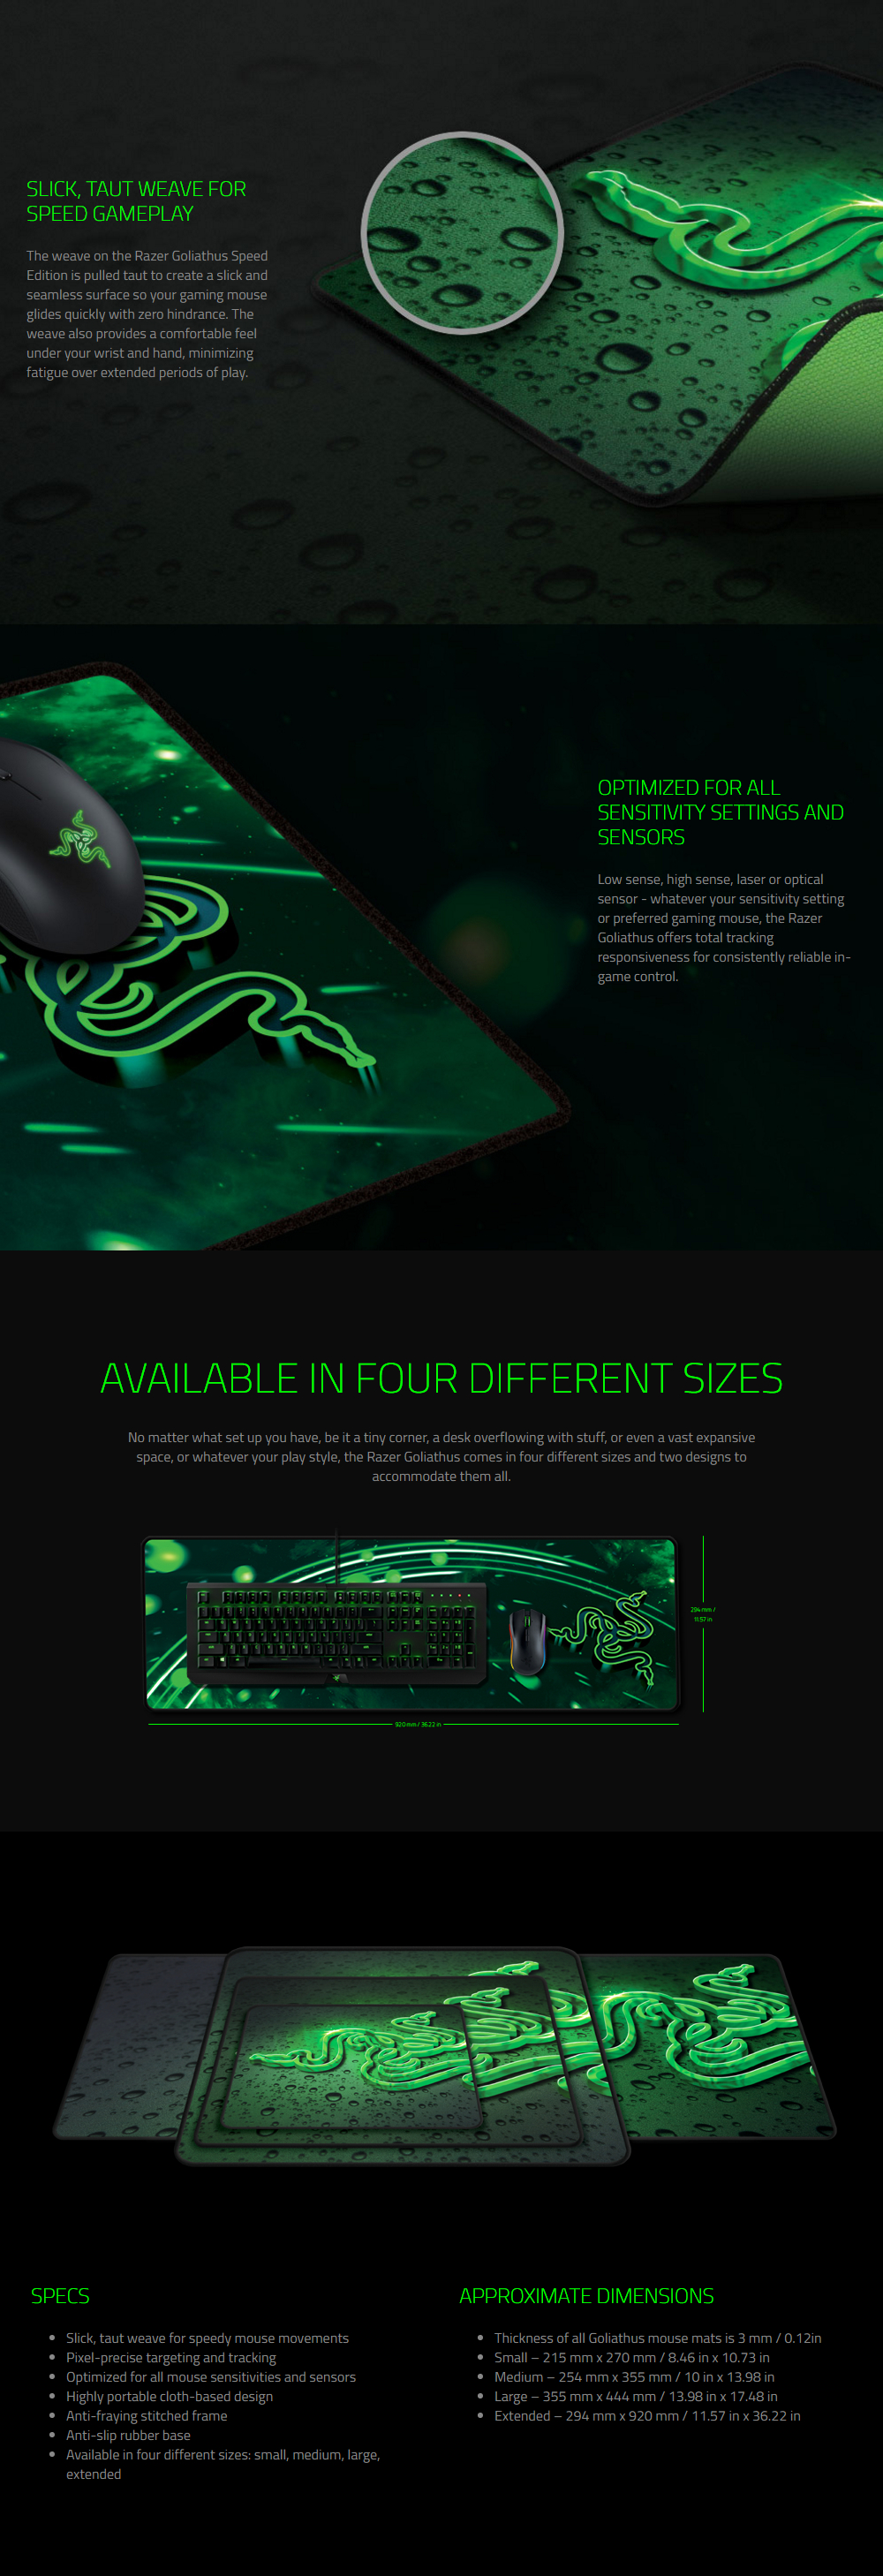 Toys Gaming Accessories Mousepads Razer Goliathus Speed Mousepad Mouse Pad Gamers Game Overview